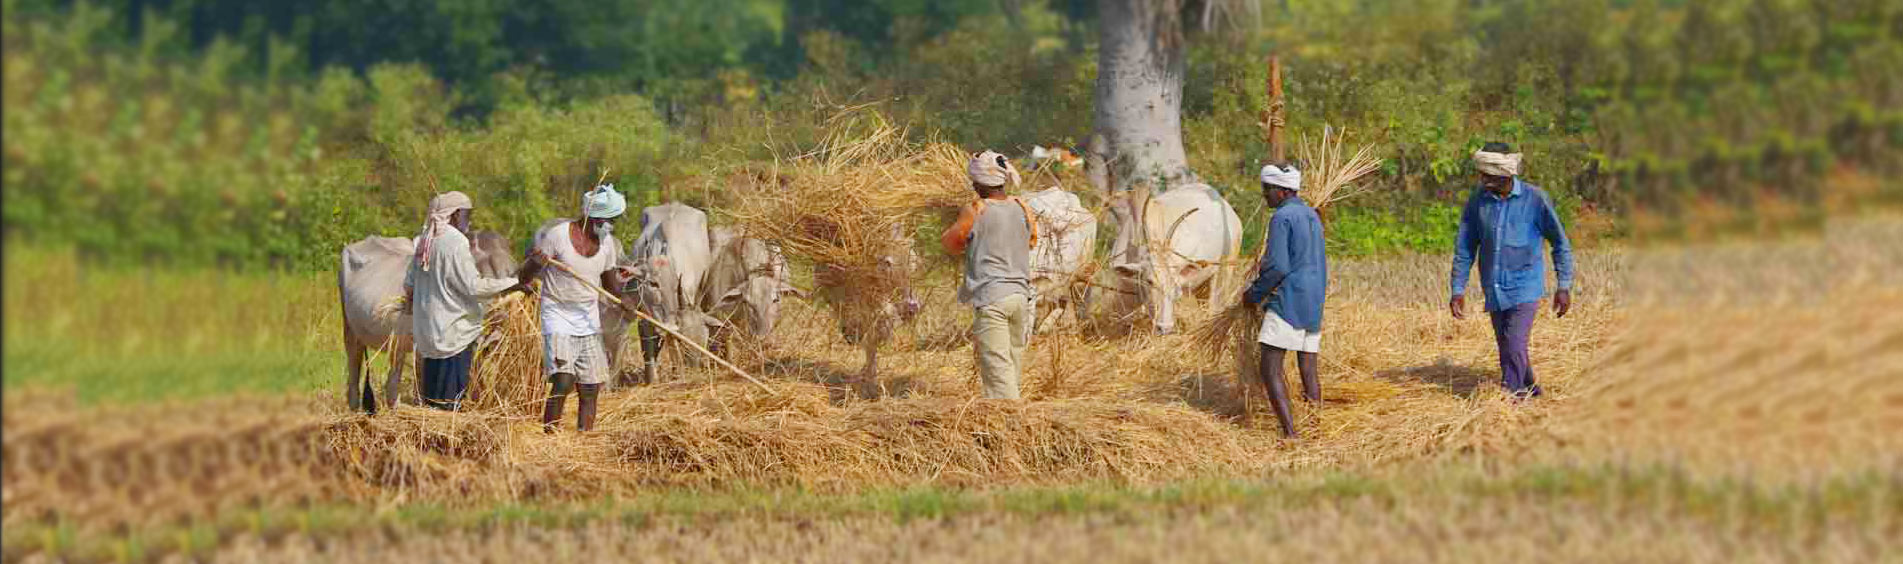 Farmer Thrashing Paddy along with Cows near Chukkimane